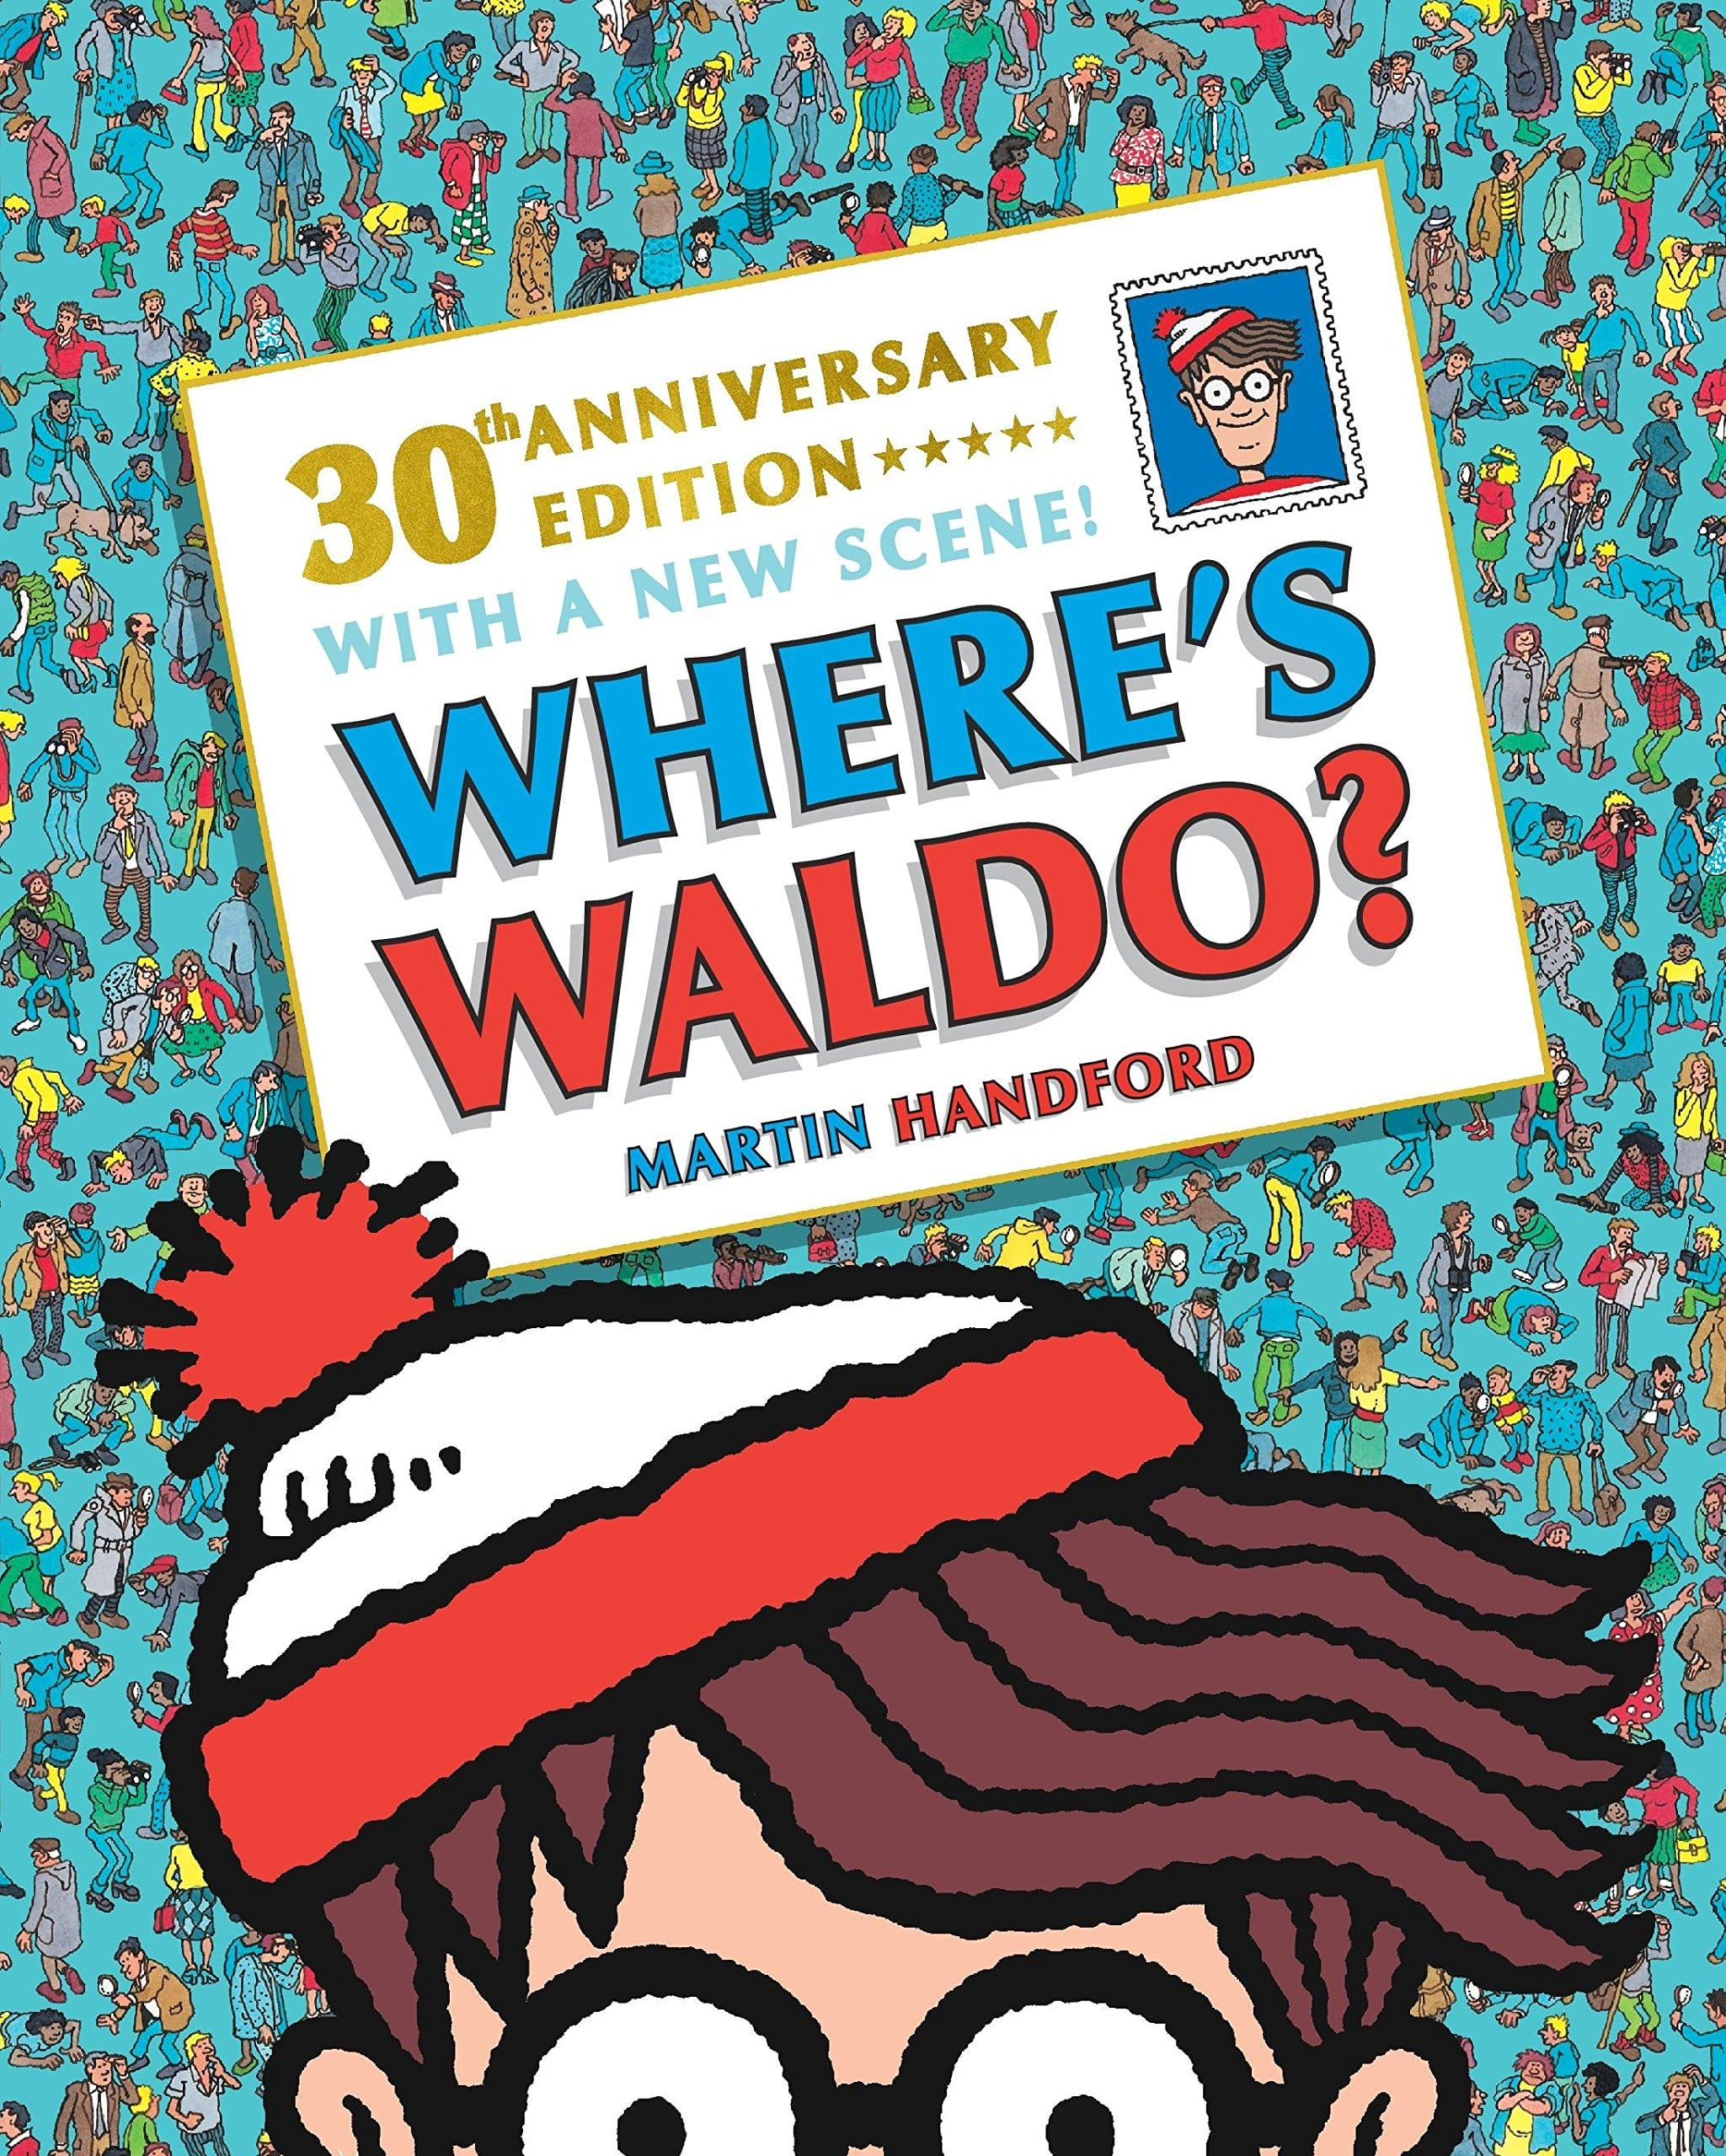 Where's Waldo? 30th Anniversary Edition (Paperback) $3.99 w/ Prime shipping (In stock 9/27)